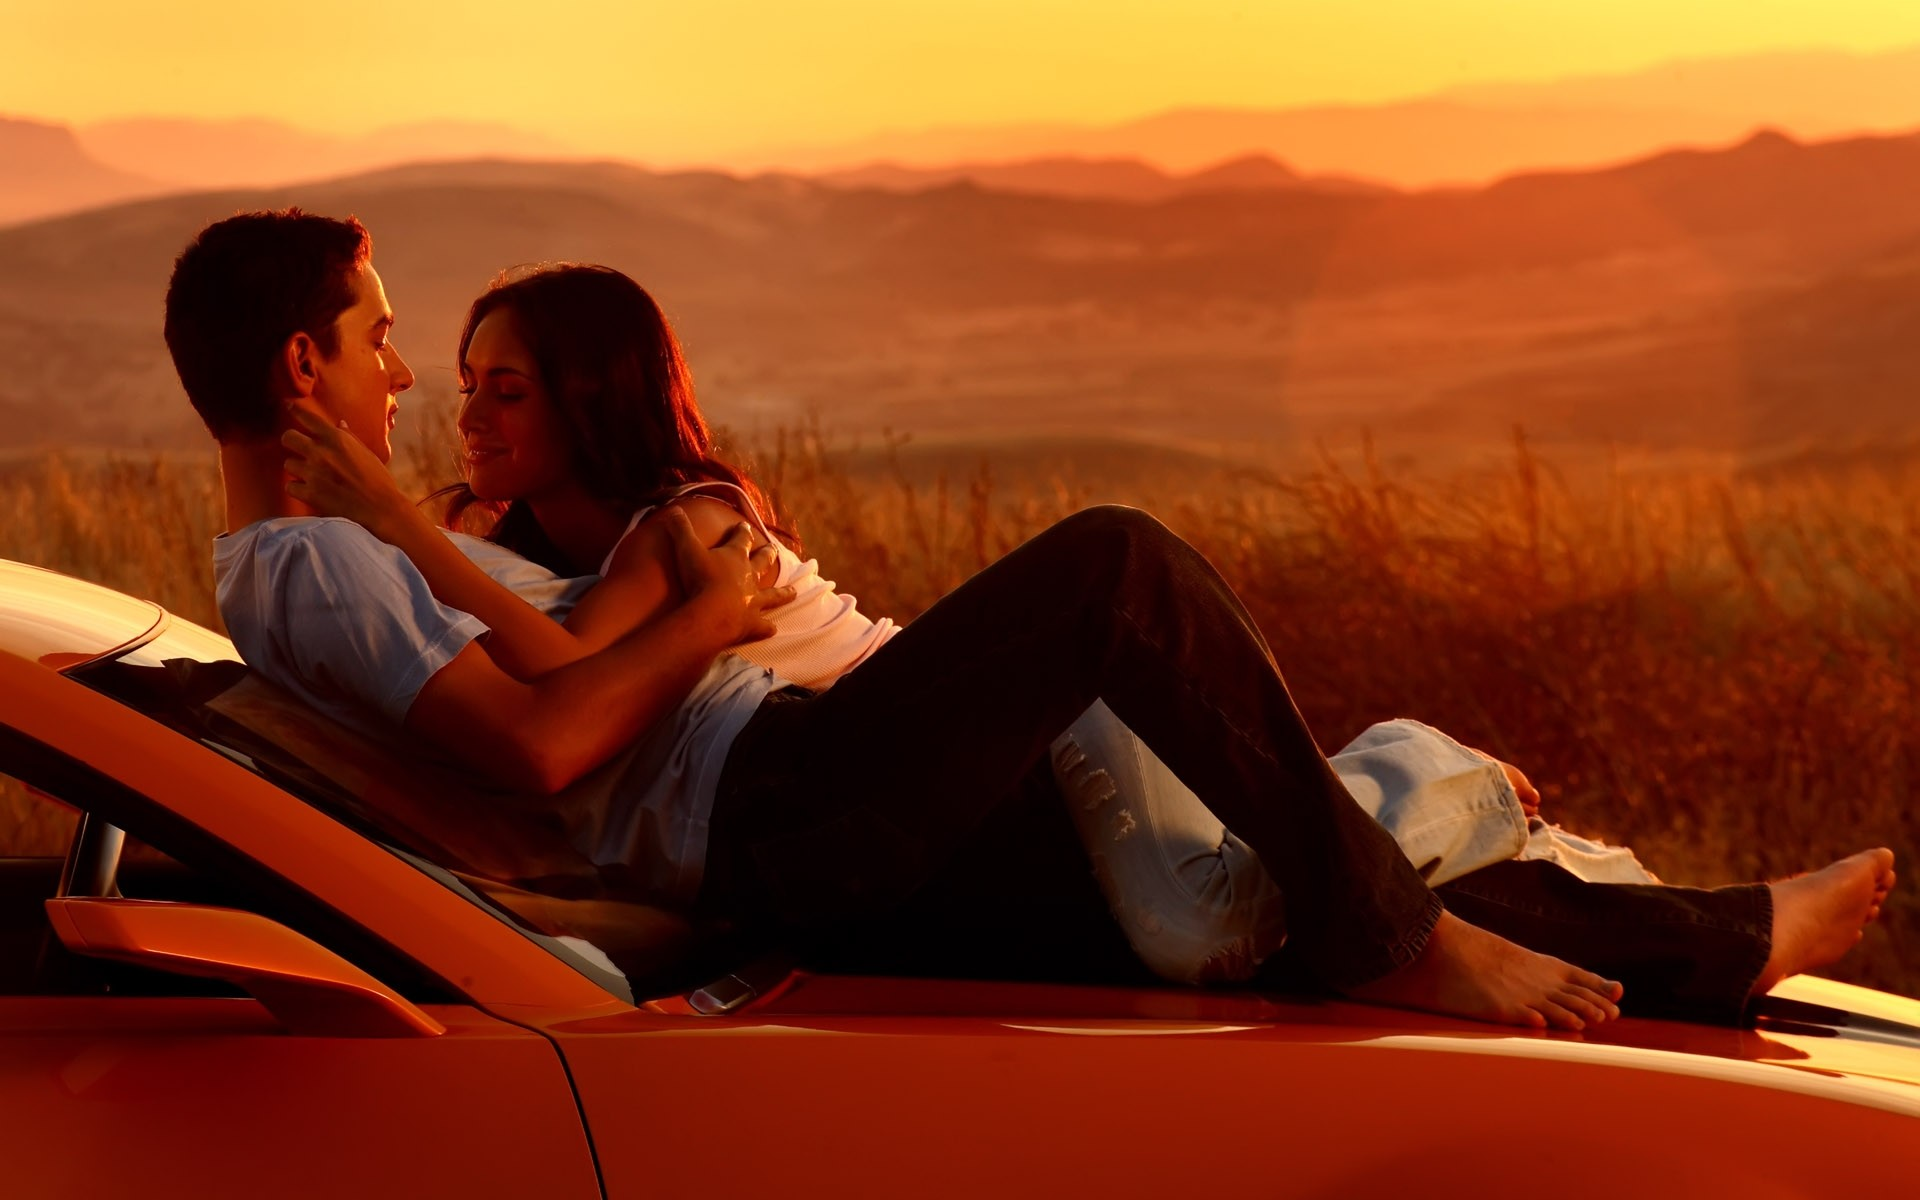 1920x1200 Wallpaper Couple, Romance, Car, Sunset, Kissing, Hugging